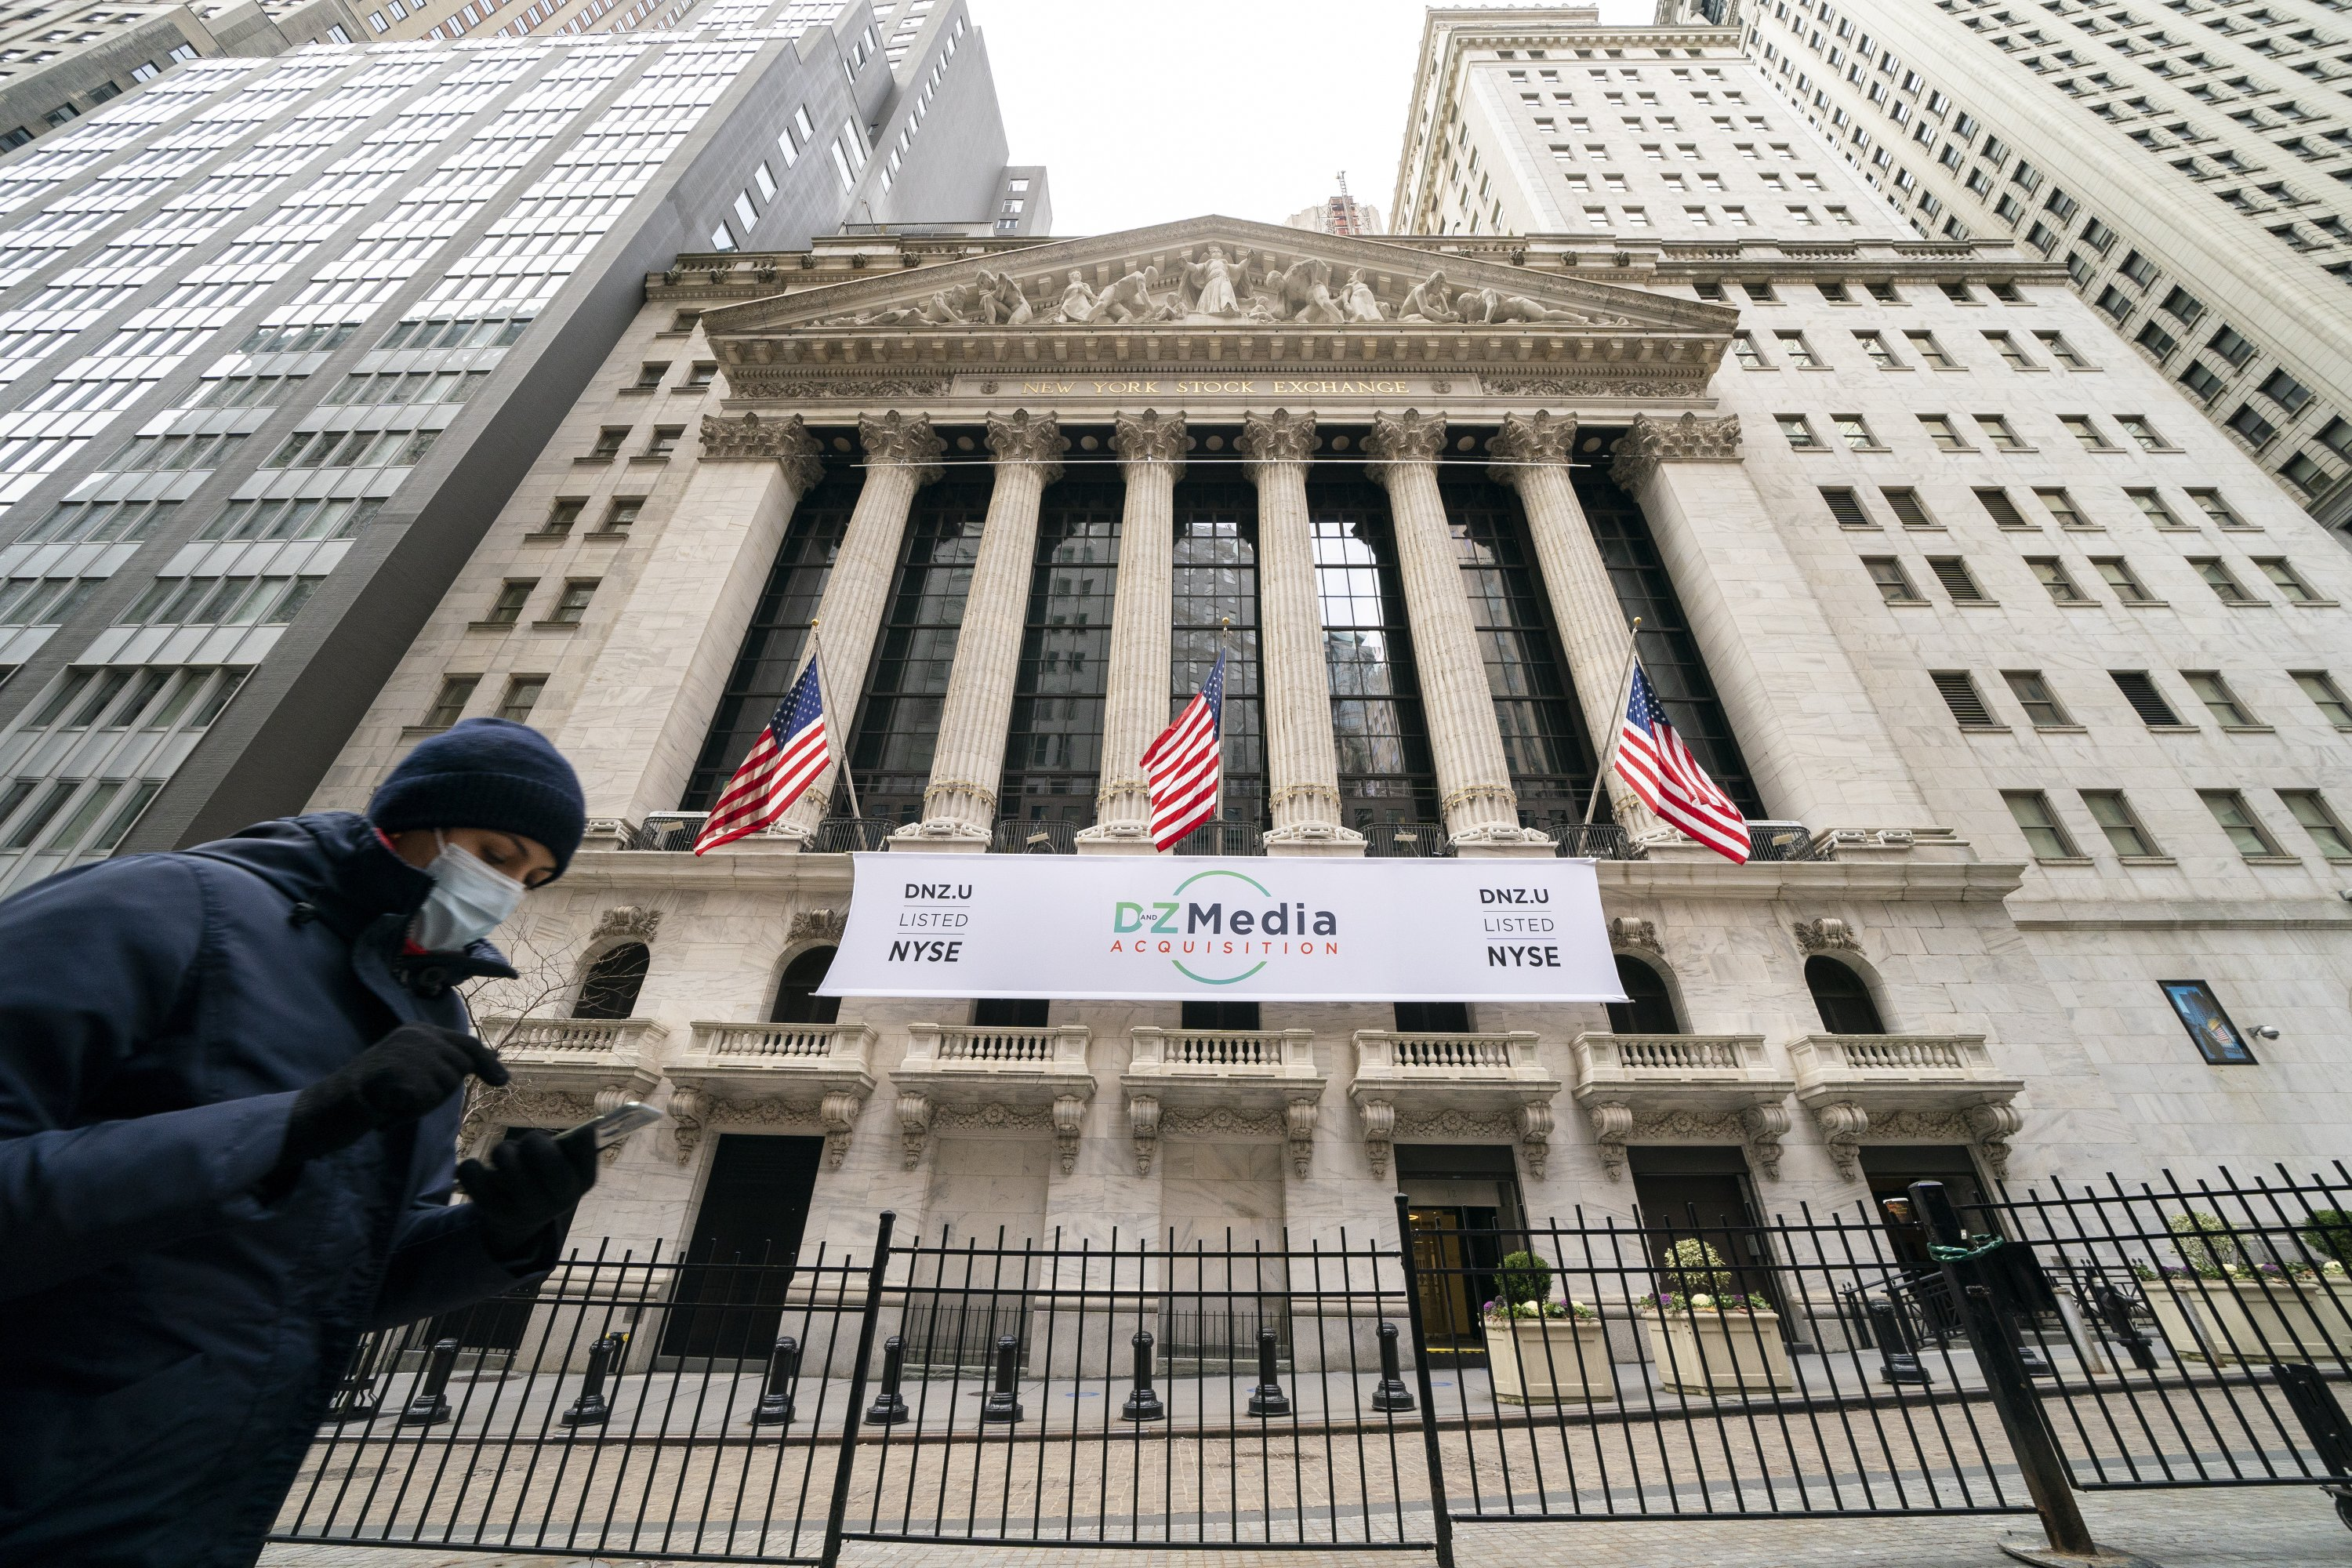 M&T Bank buying People's United in $7.6B all-stock deal